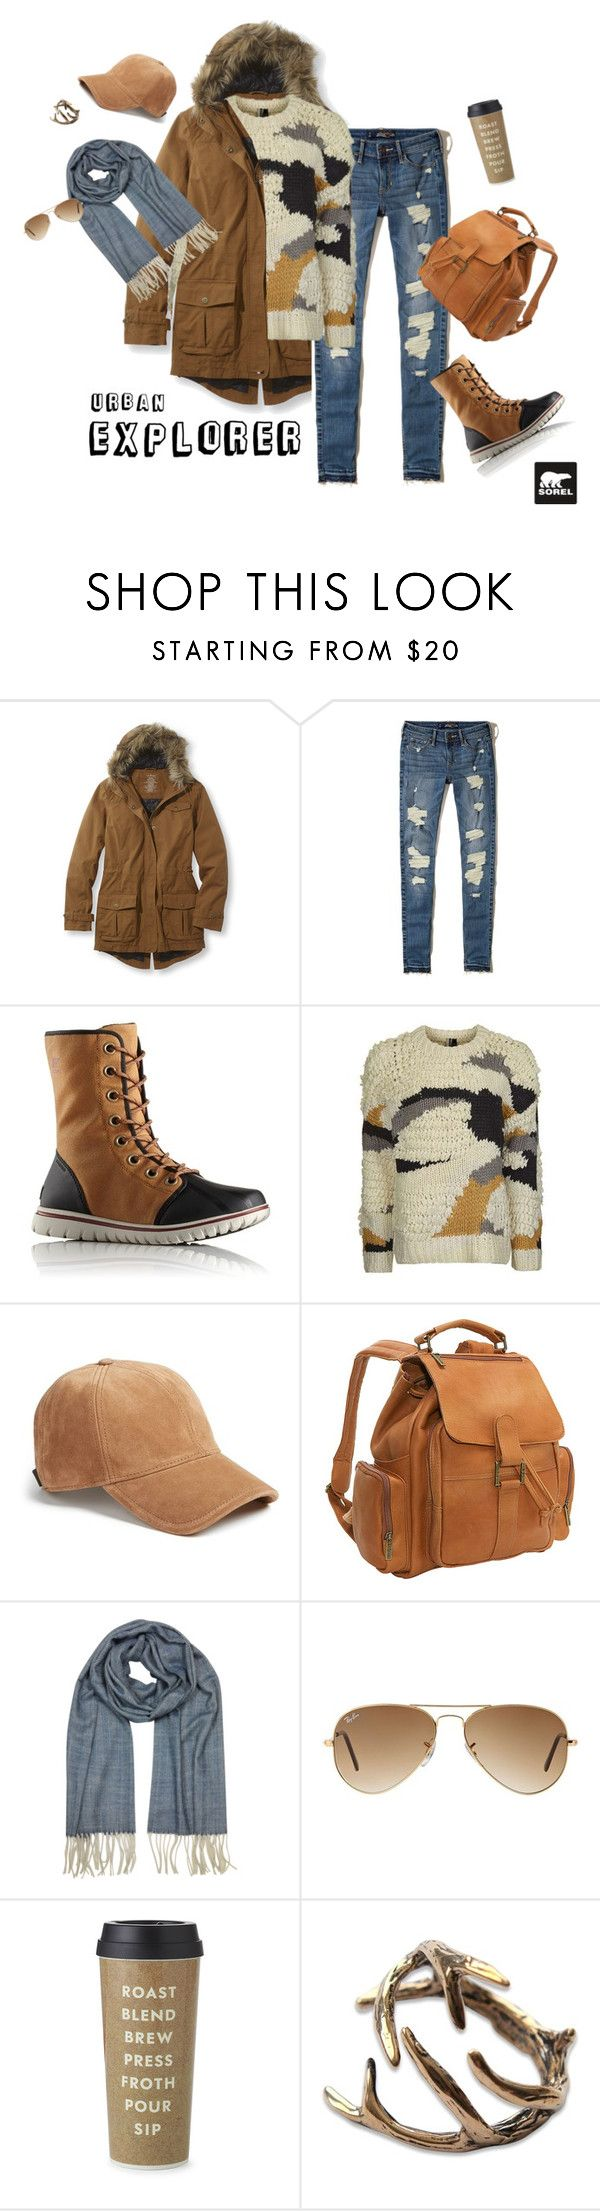 """""""Tame Winter with SOREL: Contest Entry"""" by goda-aleliuniene on Polyvore featuring L.L.Bean, Hollister Co., SOREL, Topshop, rag & bone, Le Donne, Mila Schön, Ray-Ban, Kate Spade and sorelstyle"""